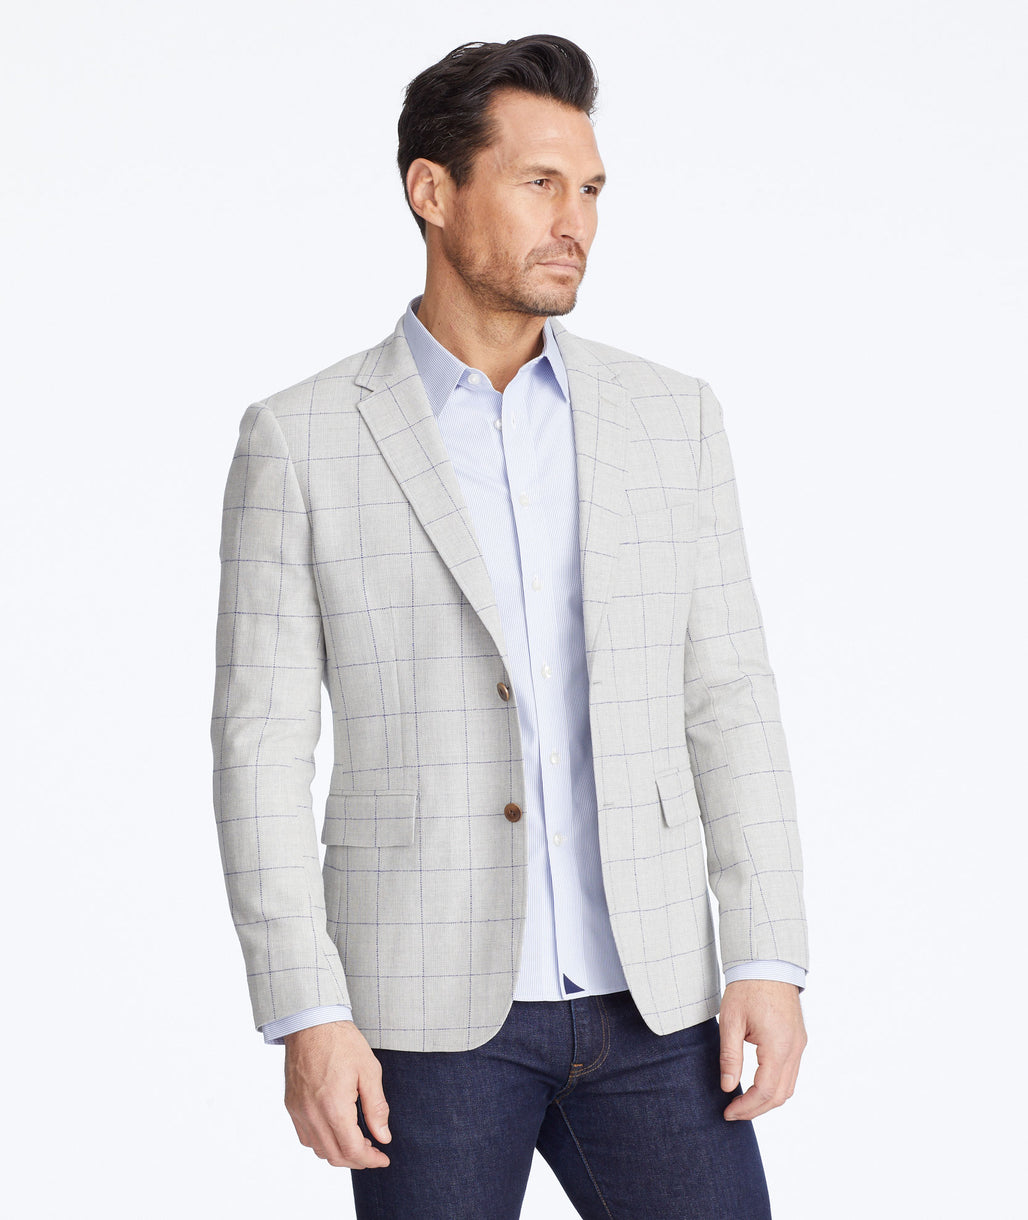 Model wearing a Tan Ordonez Sport Coat